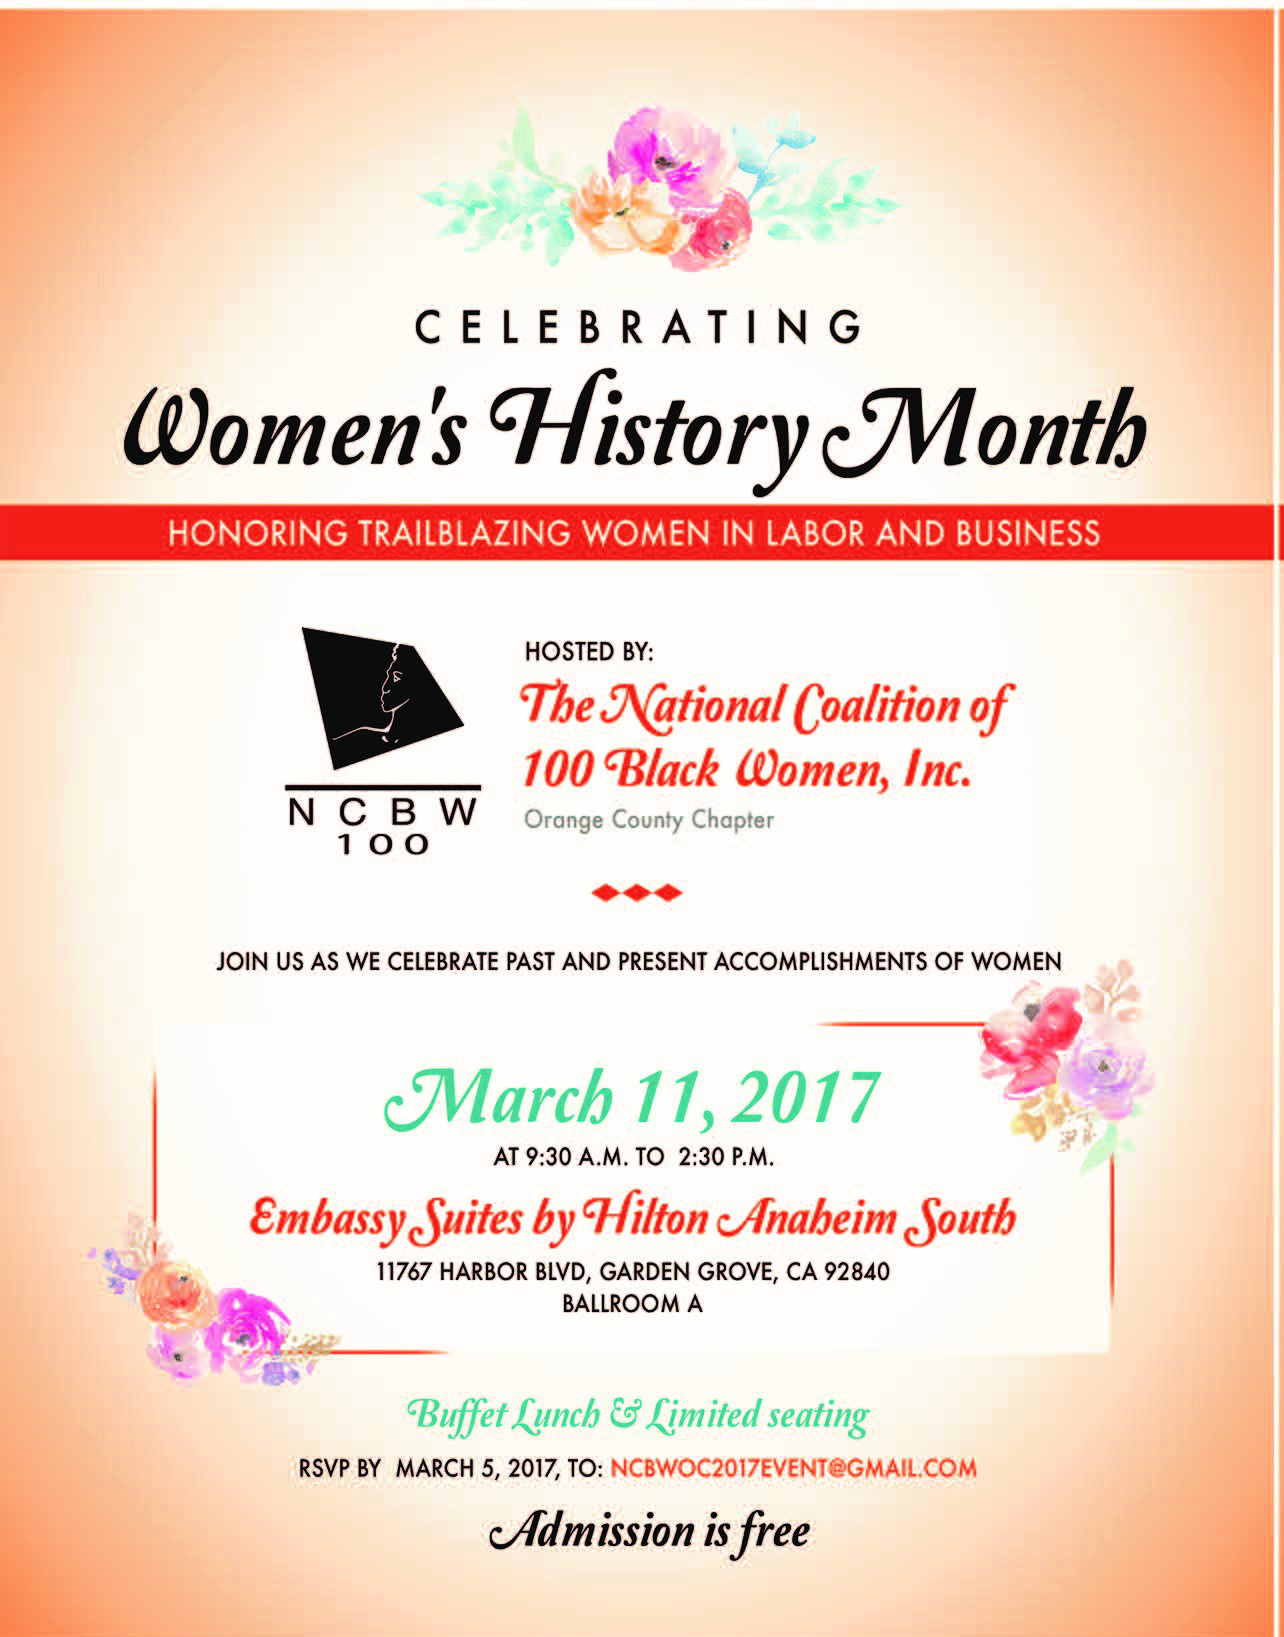 NCBW WOMEN'S HISTORY MONTH